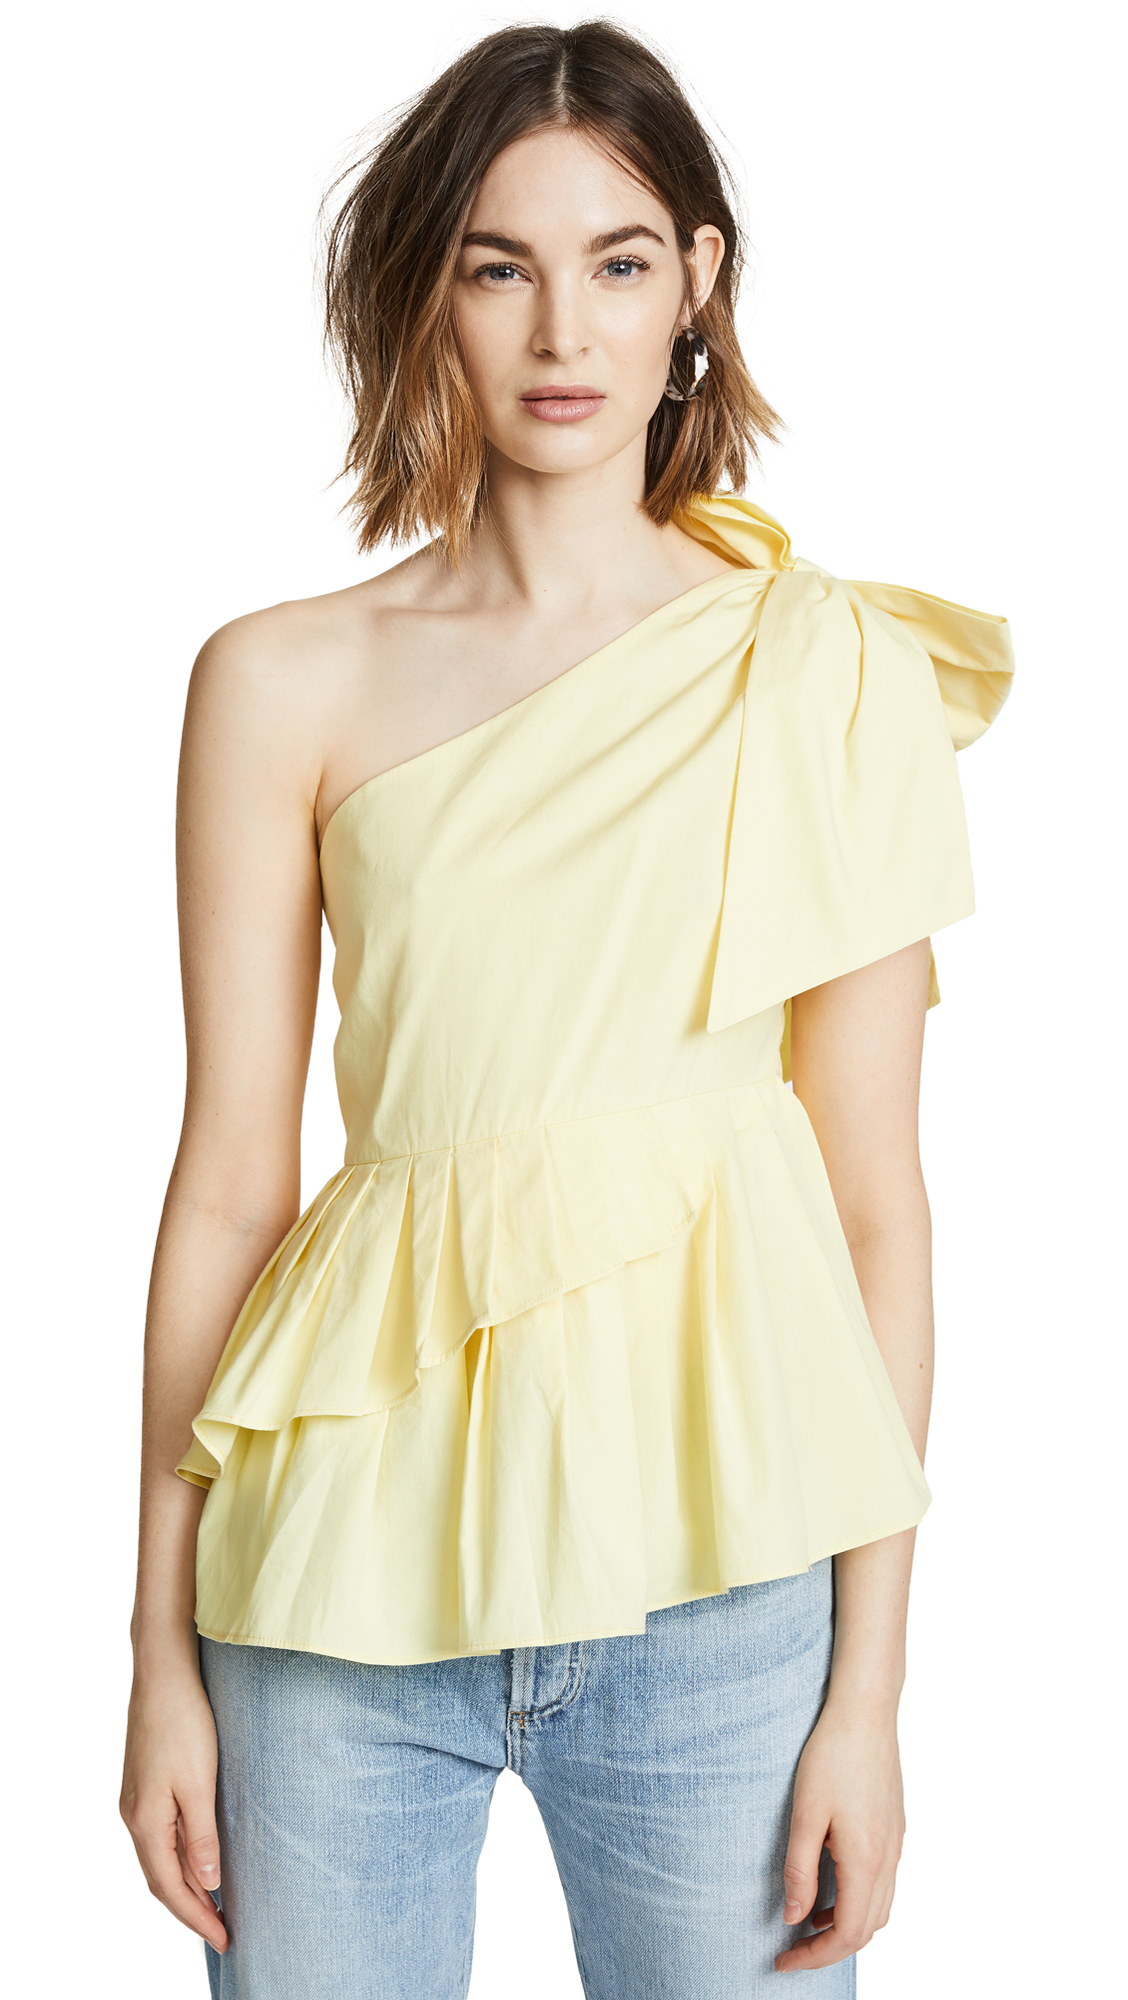 VALENCIA & VINE JENN ONE SHOULDER BOW TOP